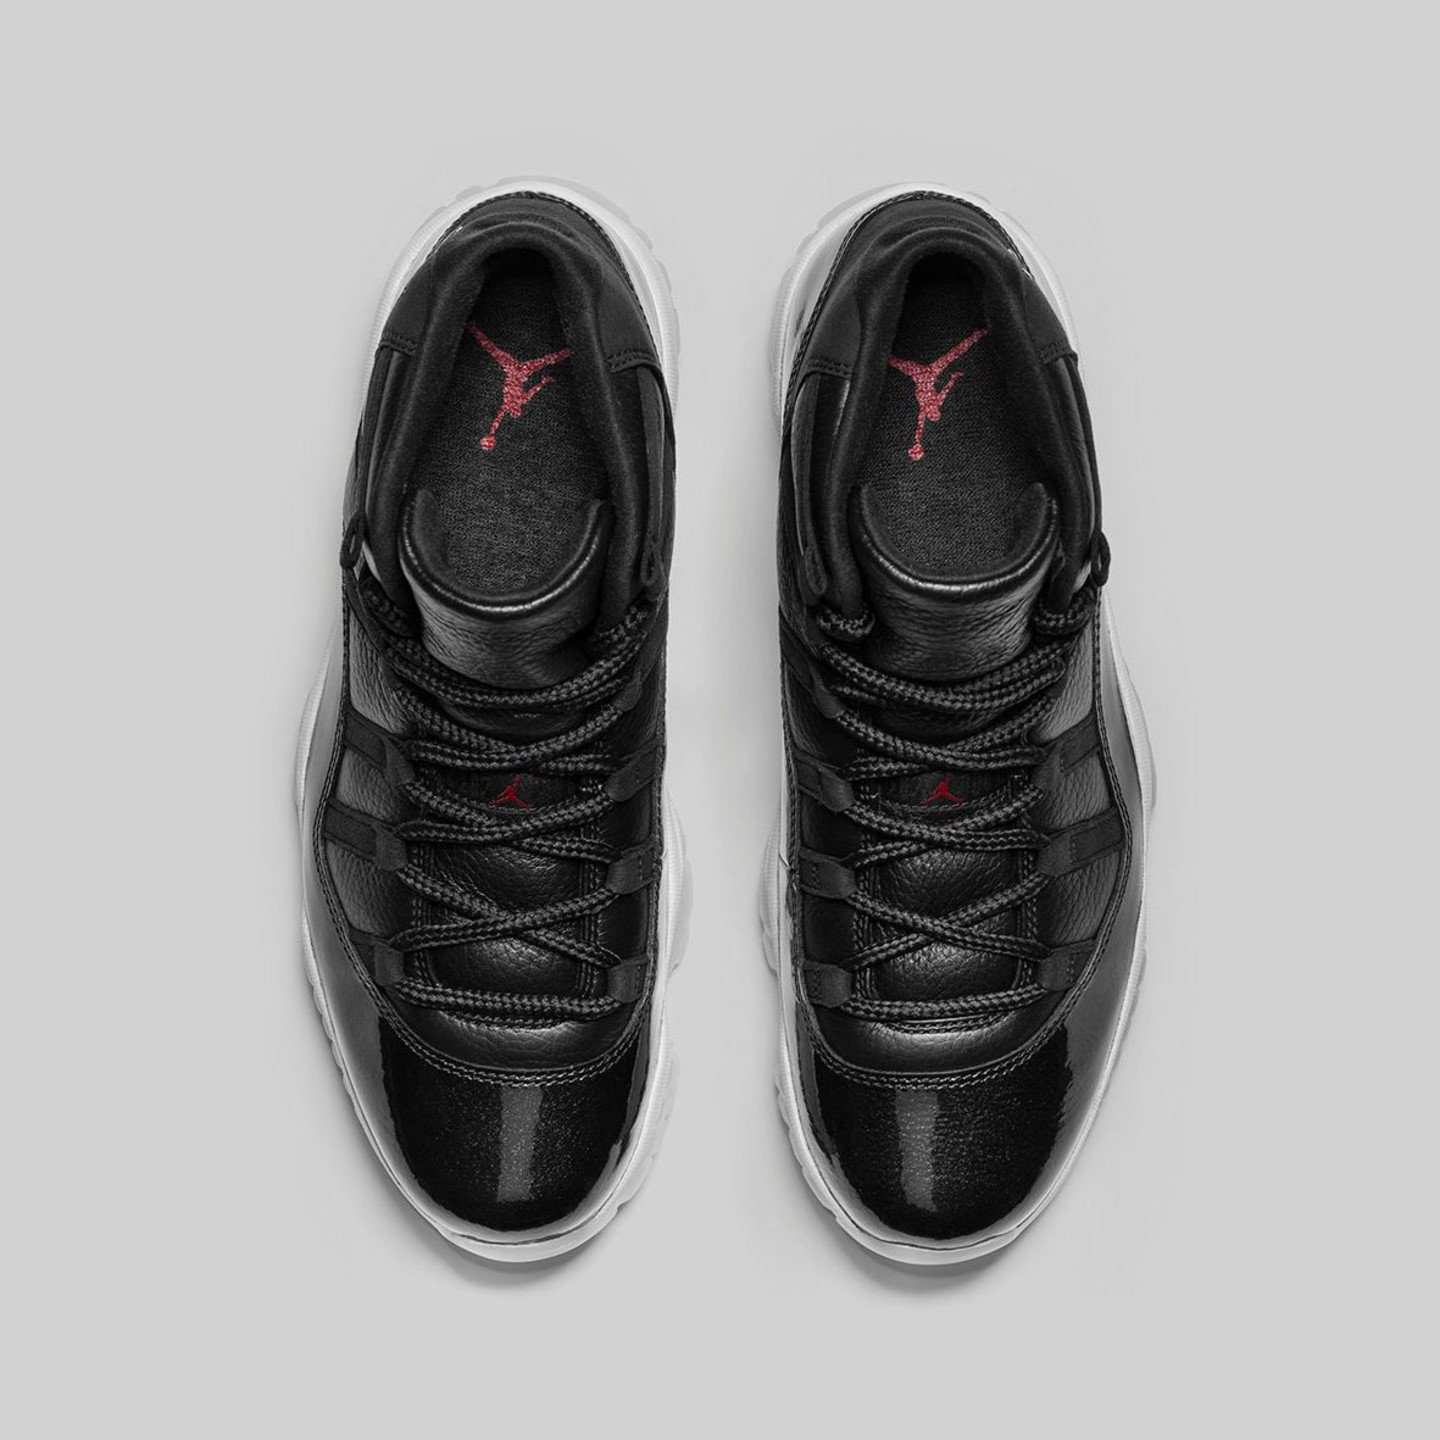 Jordan Air Jordan 11 Retro ´72-10´ Black / Gym Red / White / Anthracite 378037-002-42